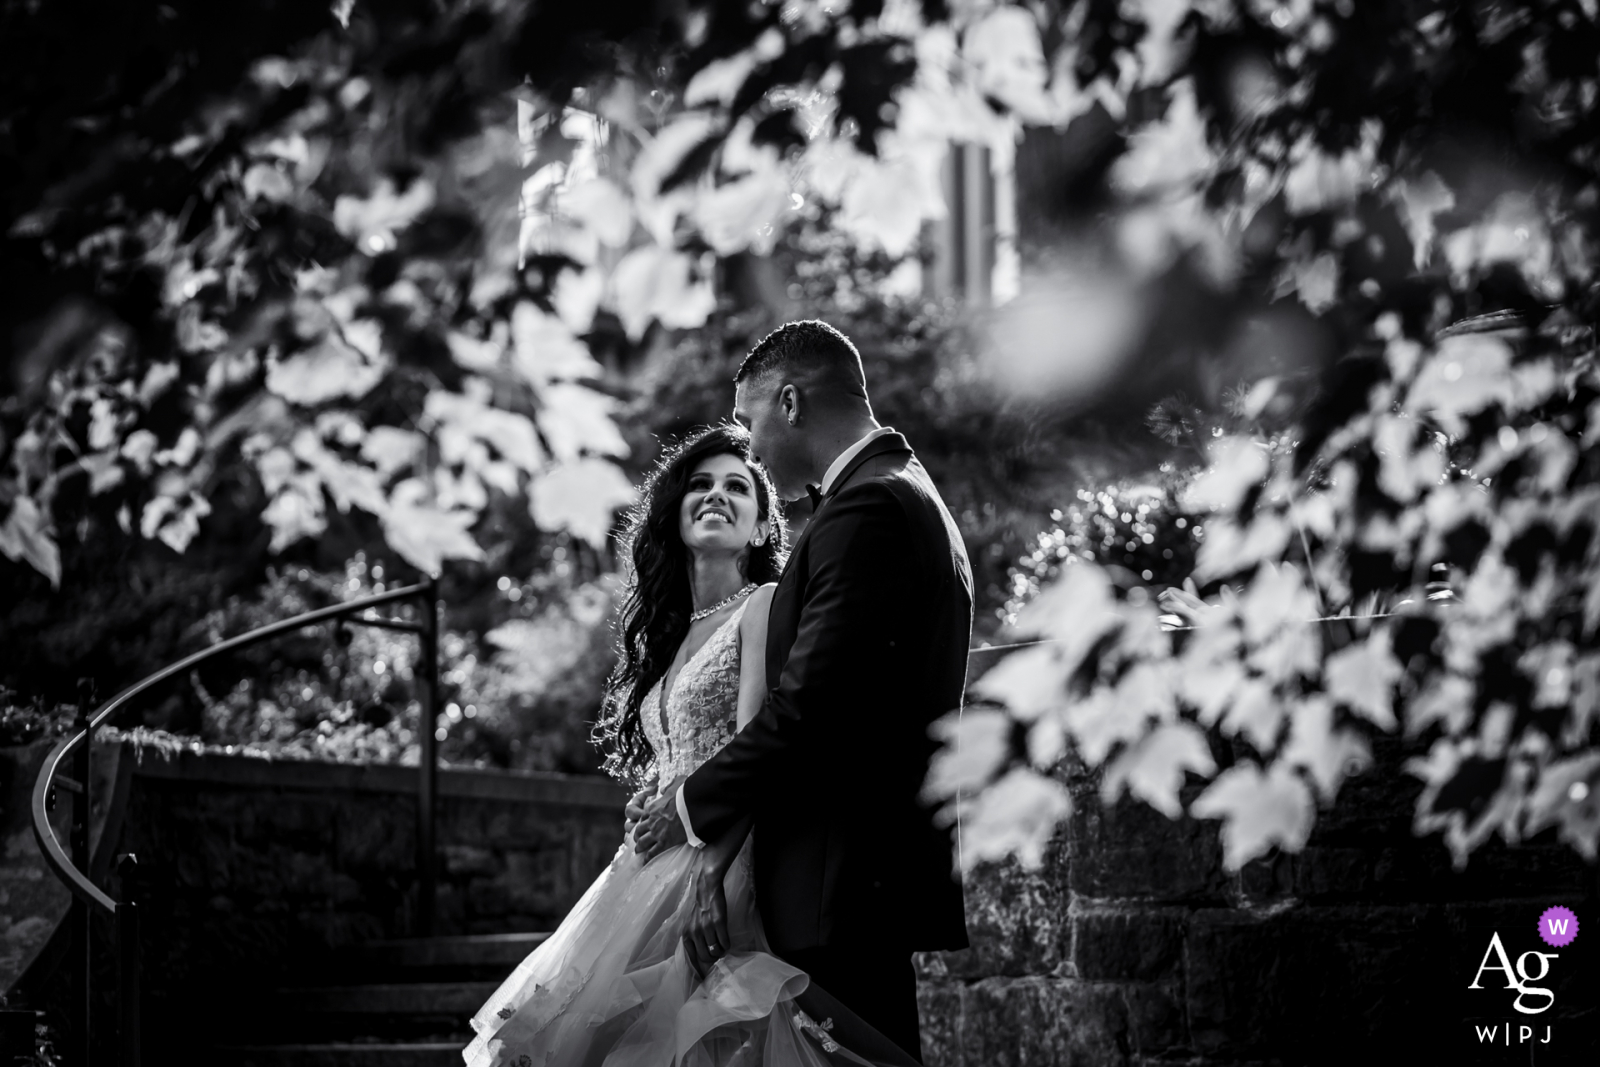 DE artistic wedding photo from Winterthur, in Delaware with a Sunlit, lovely happily married couple